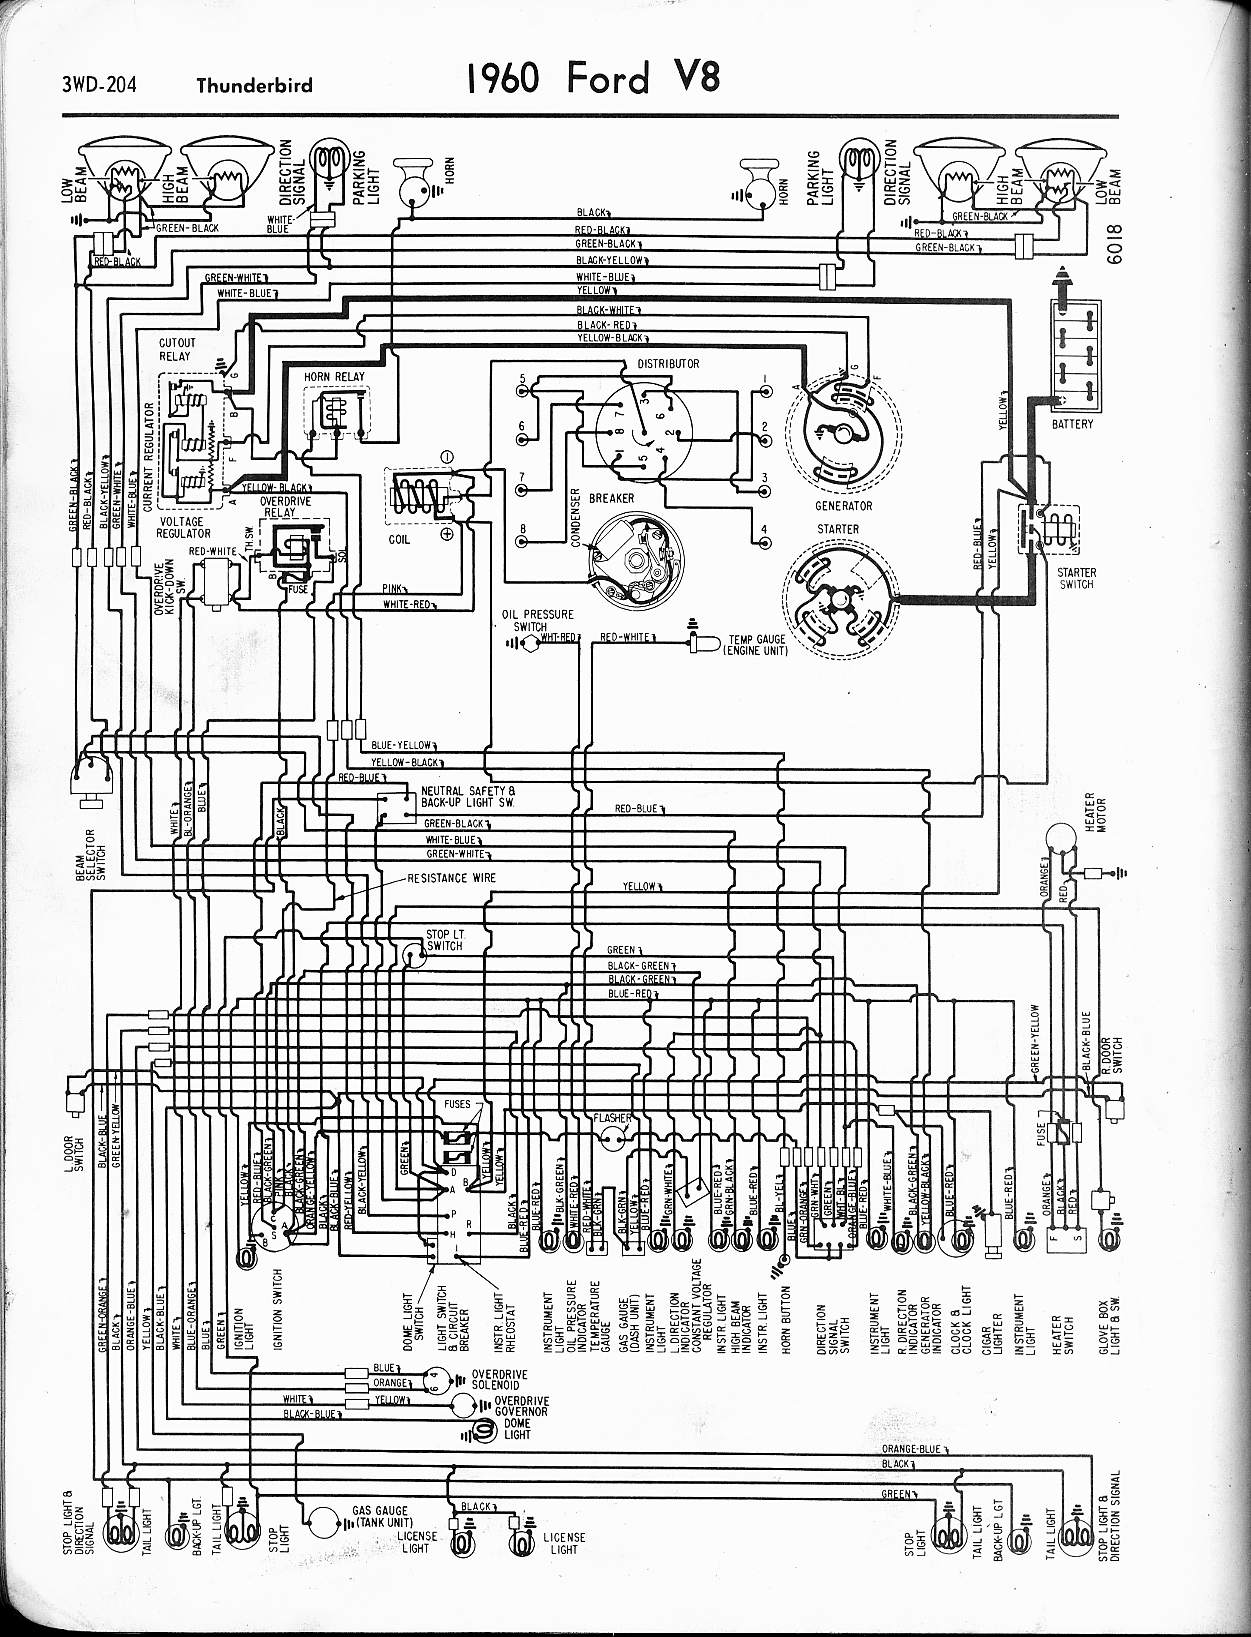 MWire5765 204 1964 1966 thunderbirfd wiring schematic 66 mustang wiring diagram 1966 ford fairlane wiring diagram at gsmportal.co